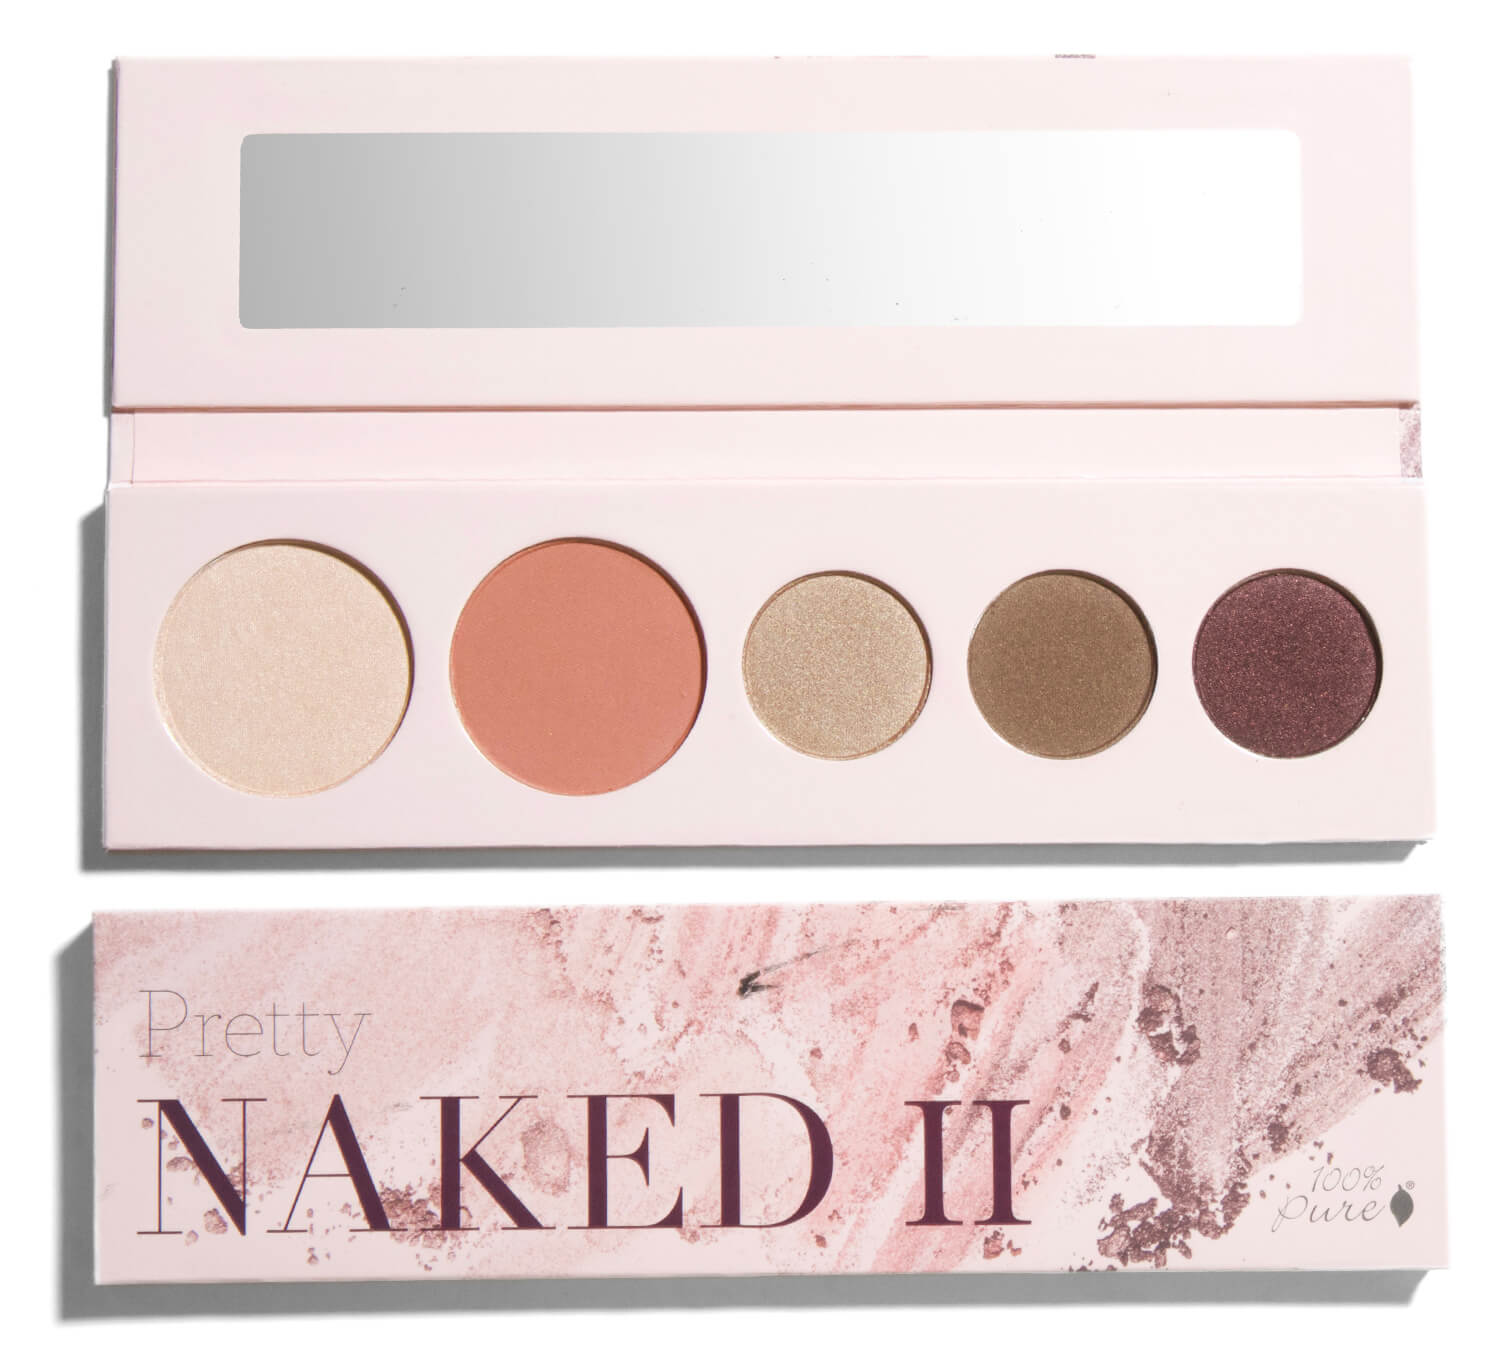 100% PURE Fruit Pigmented® Pretty Naked Palette II